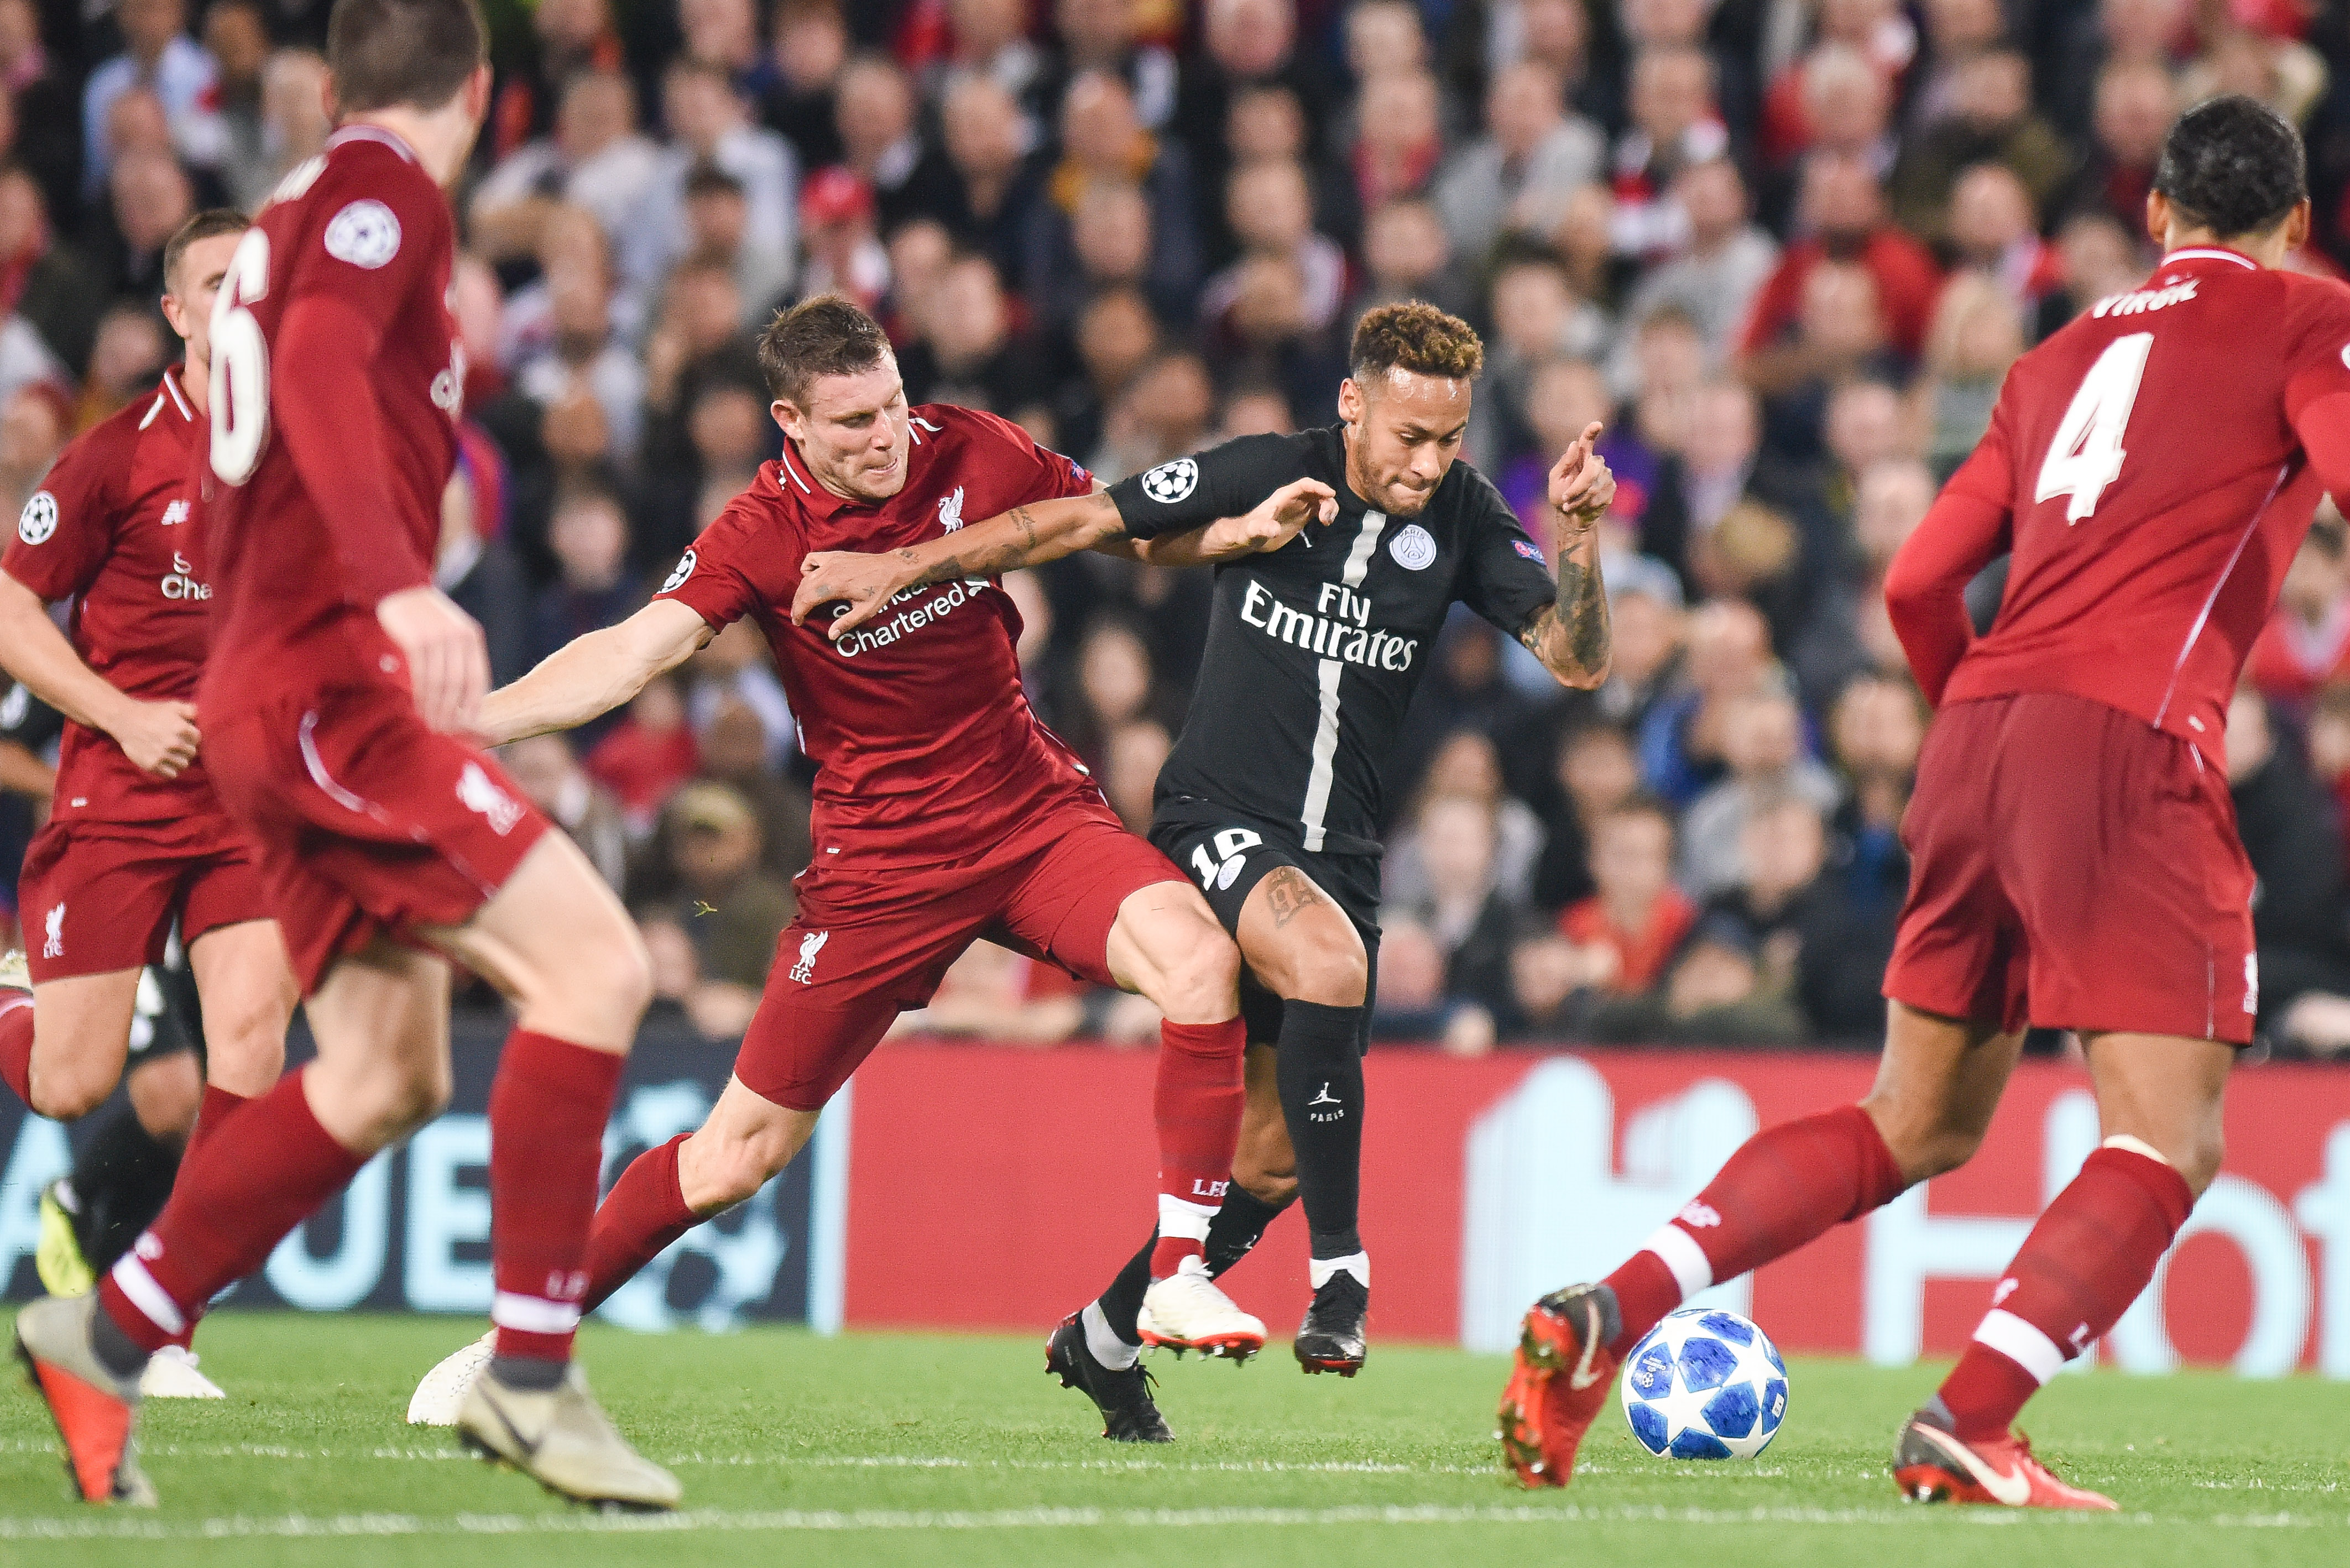 Liverpool v Paris Saint-Germain, Champions League, Football, Anfield, UK, 18.9.2018